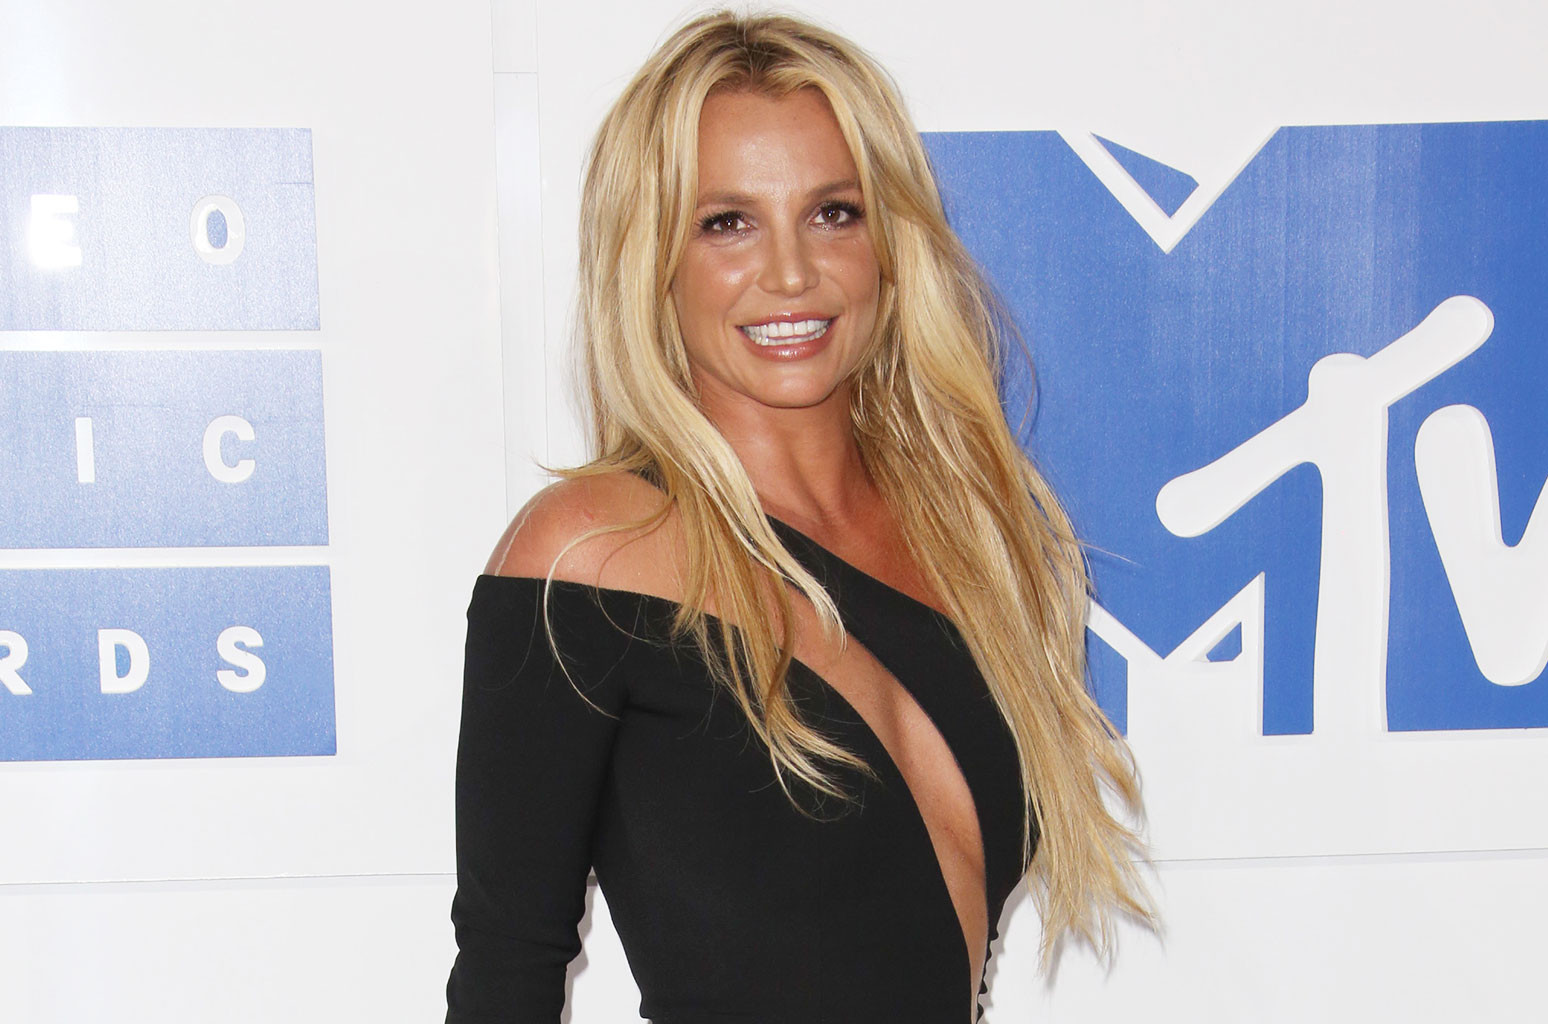 Britney Spears Shares Beachy Hawaiian Memories The Drink Named After Her Billboard